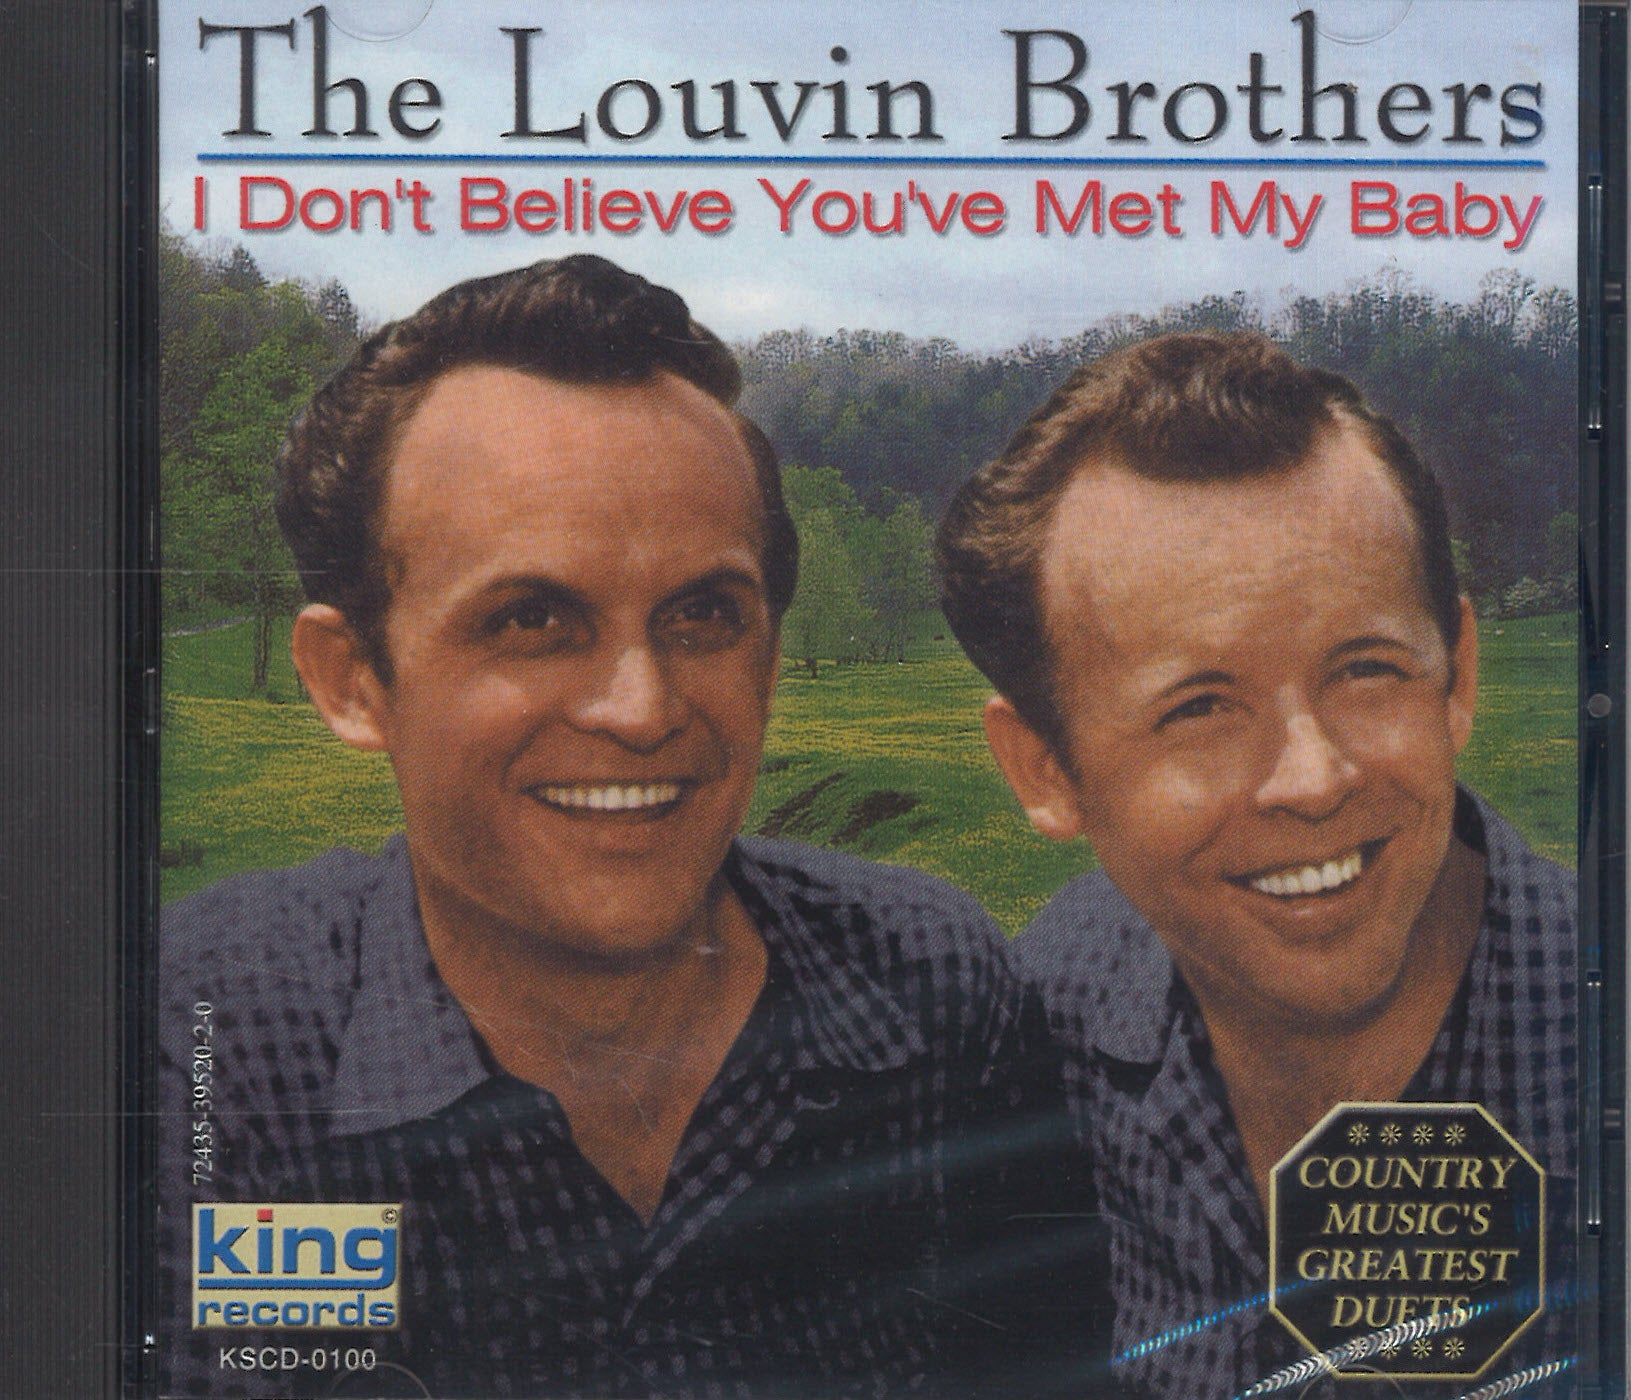 The Louvin Brothers I Don't Believe You've Met My Baby